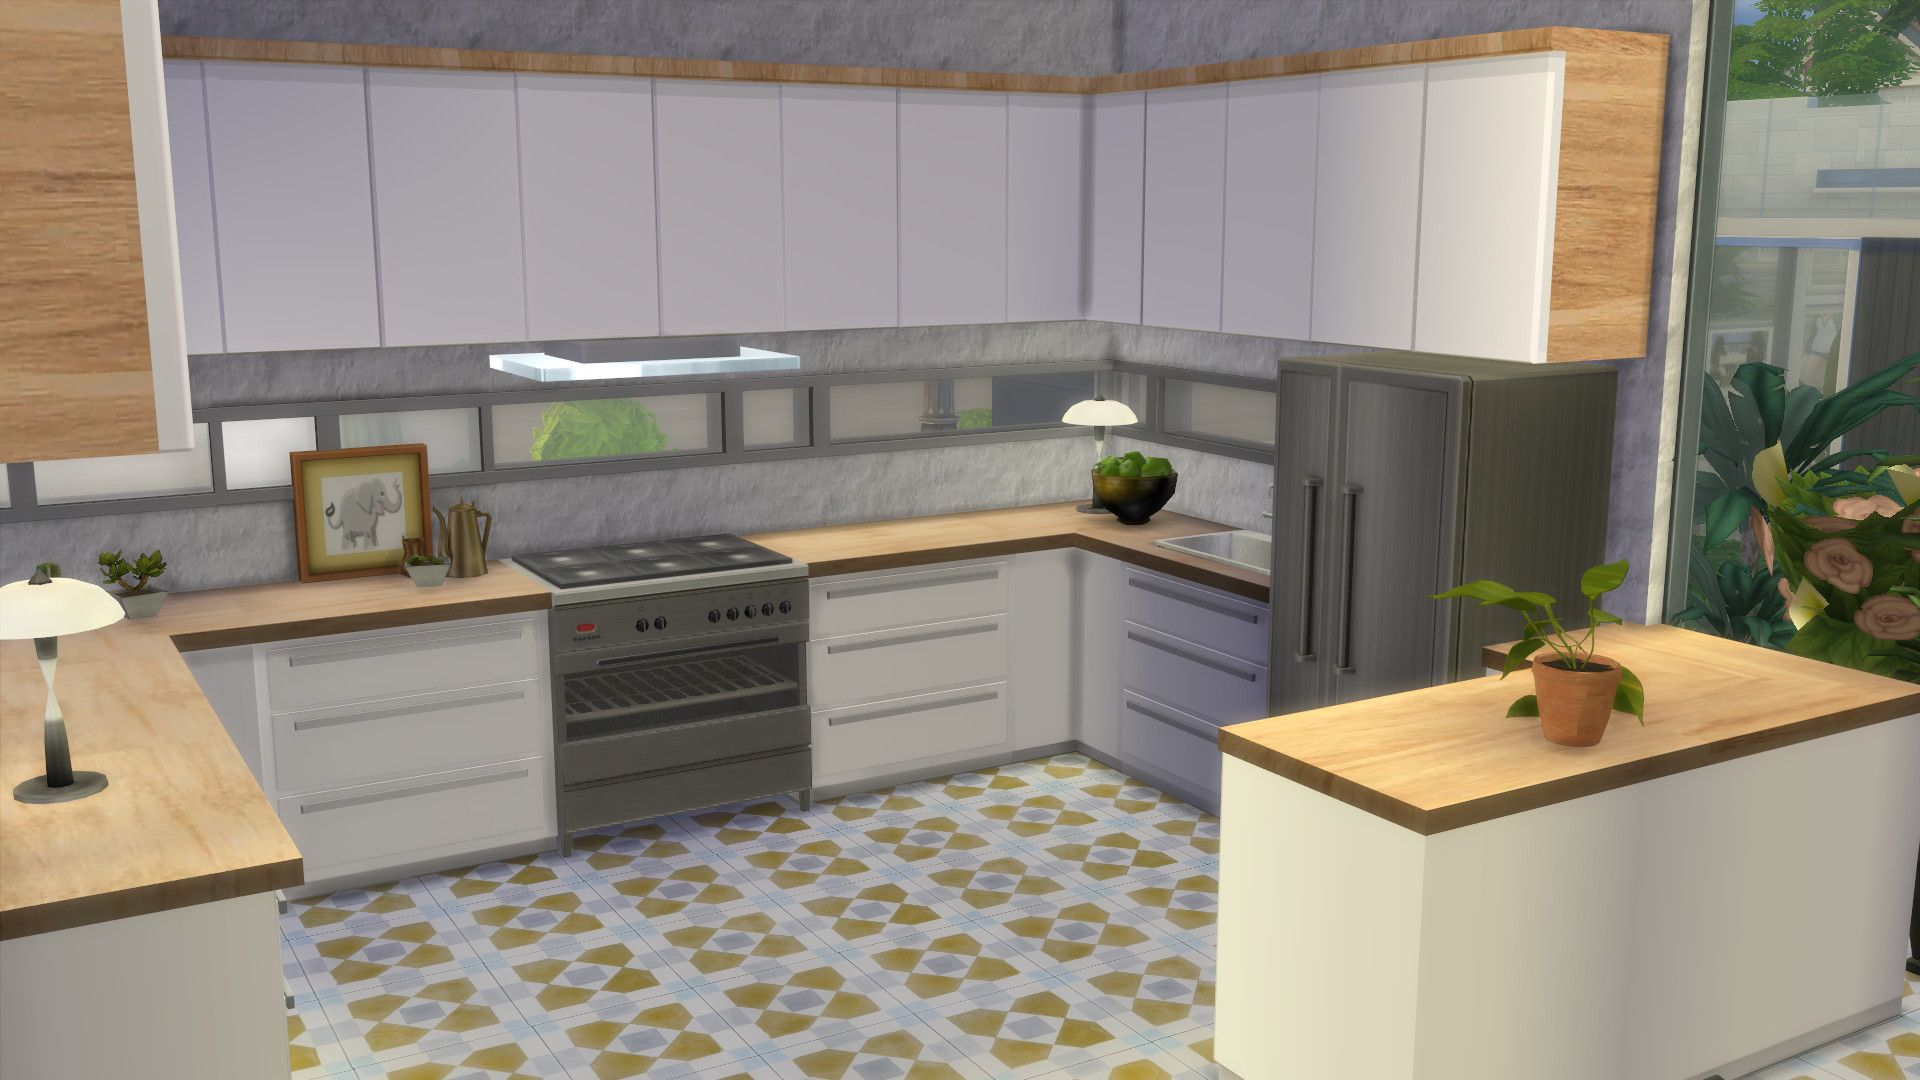 mod the sims kitchen from perfect patio stuff no from No Backsplash ...